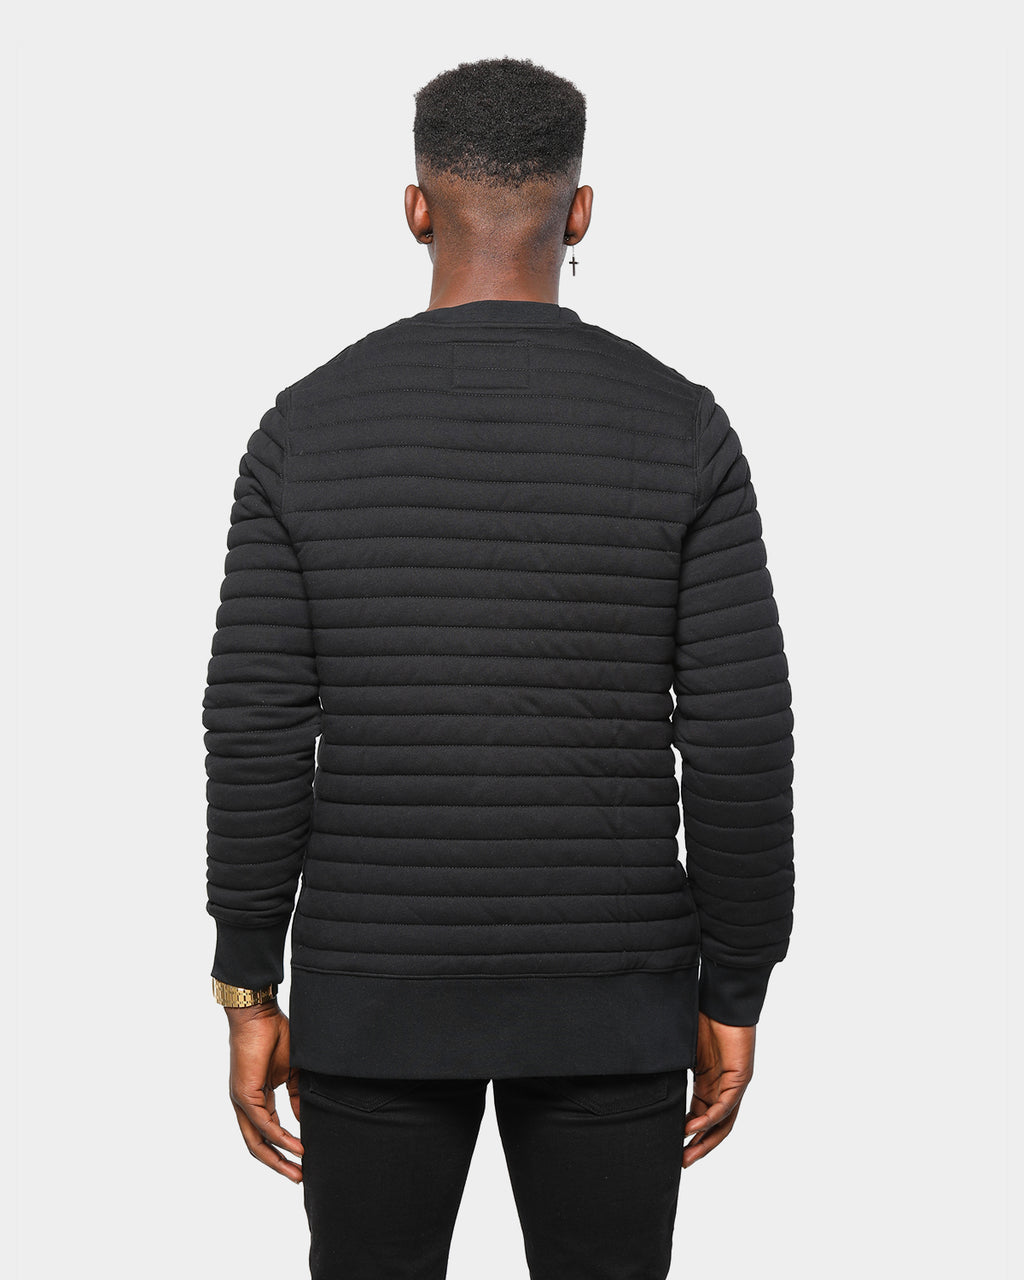 Carré Men's Shine Quilted Crew Sweater Black